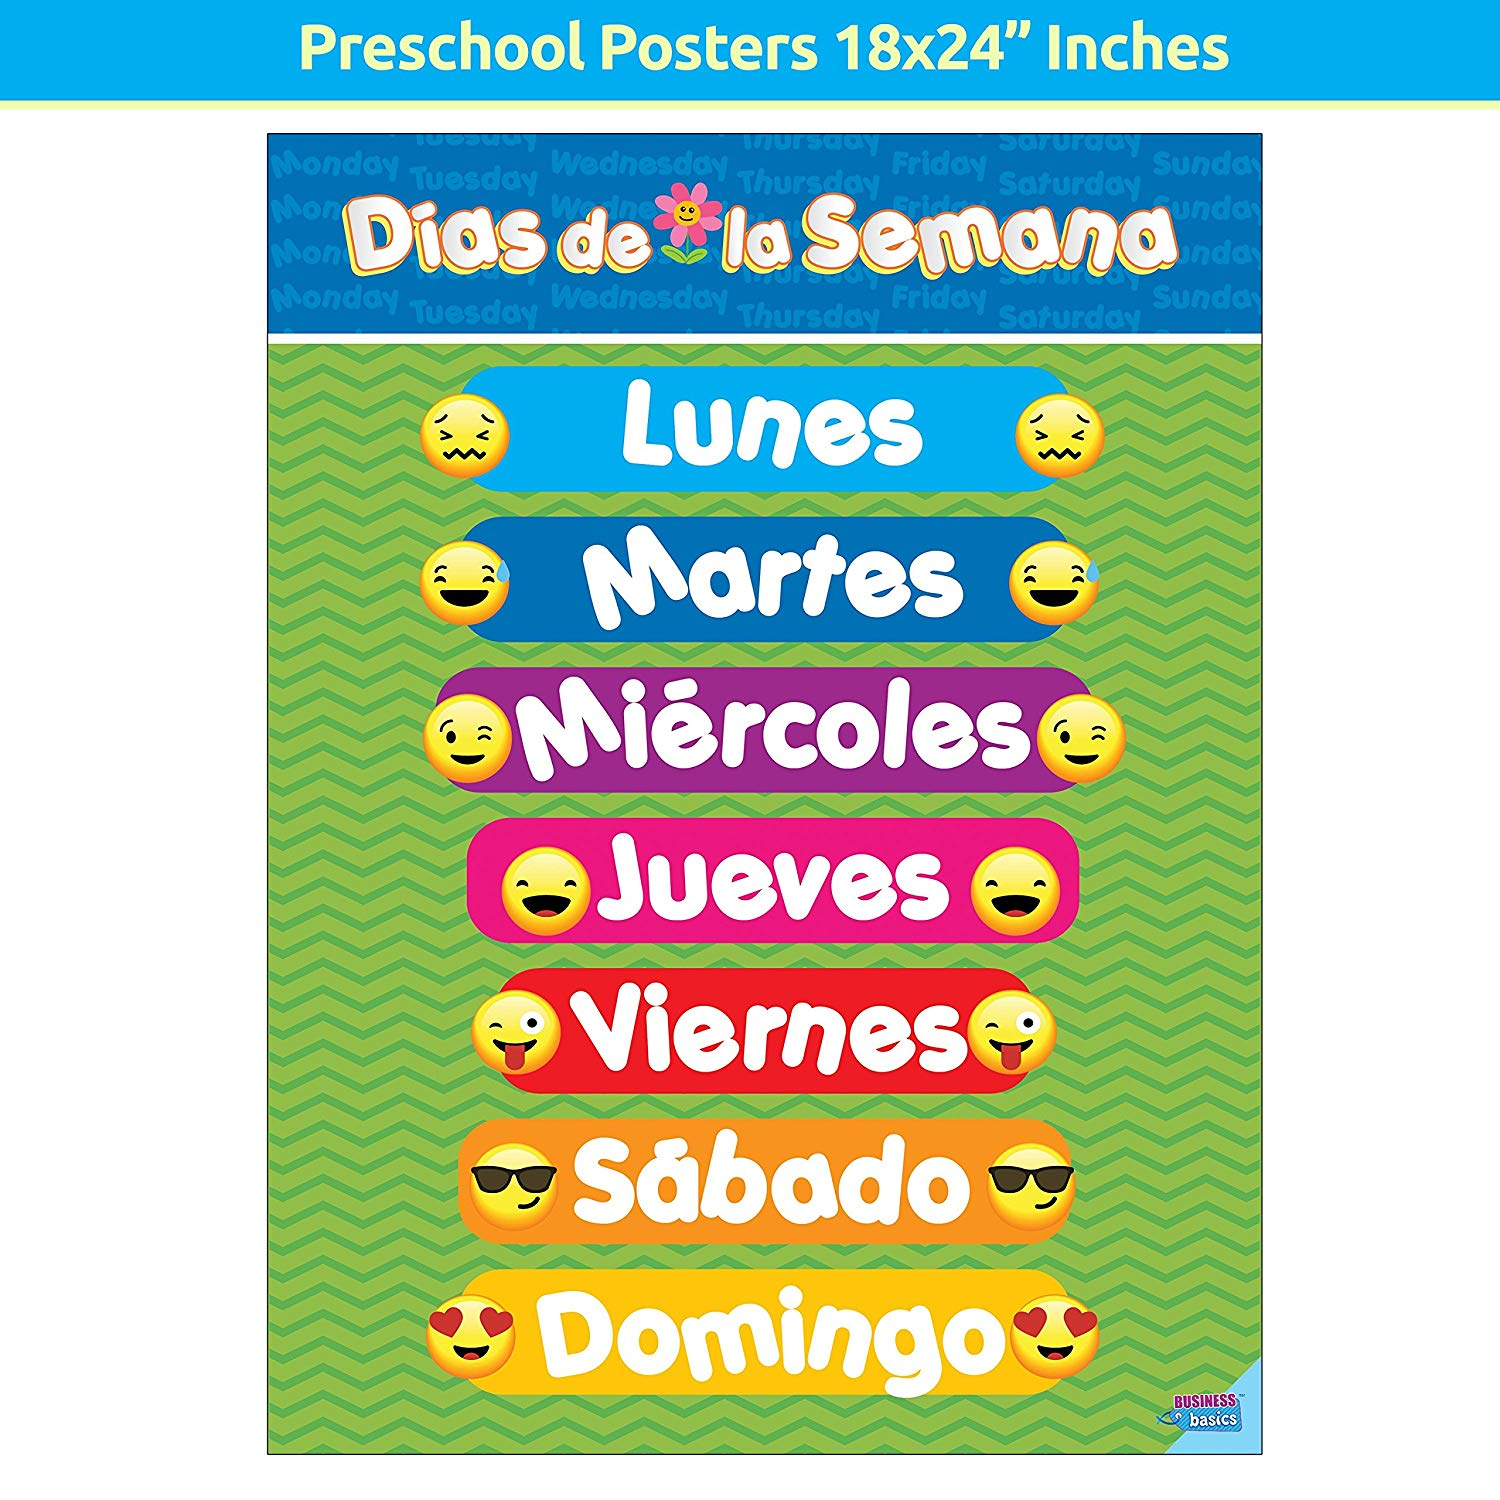 Educational Preschool Posters For Toddlers And Kids For